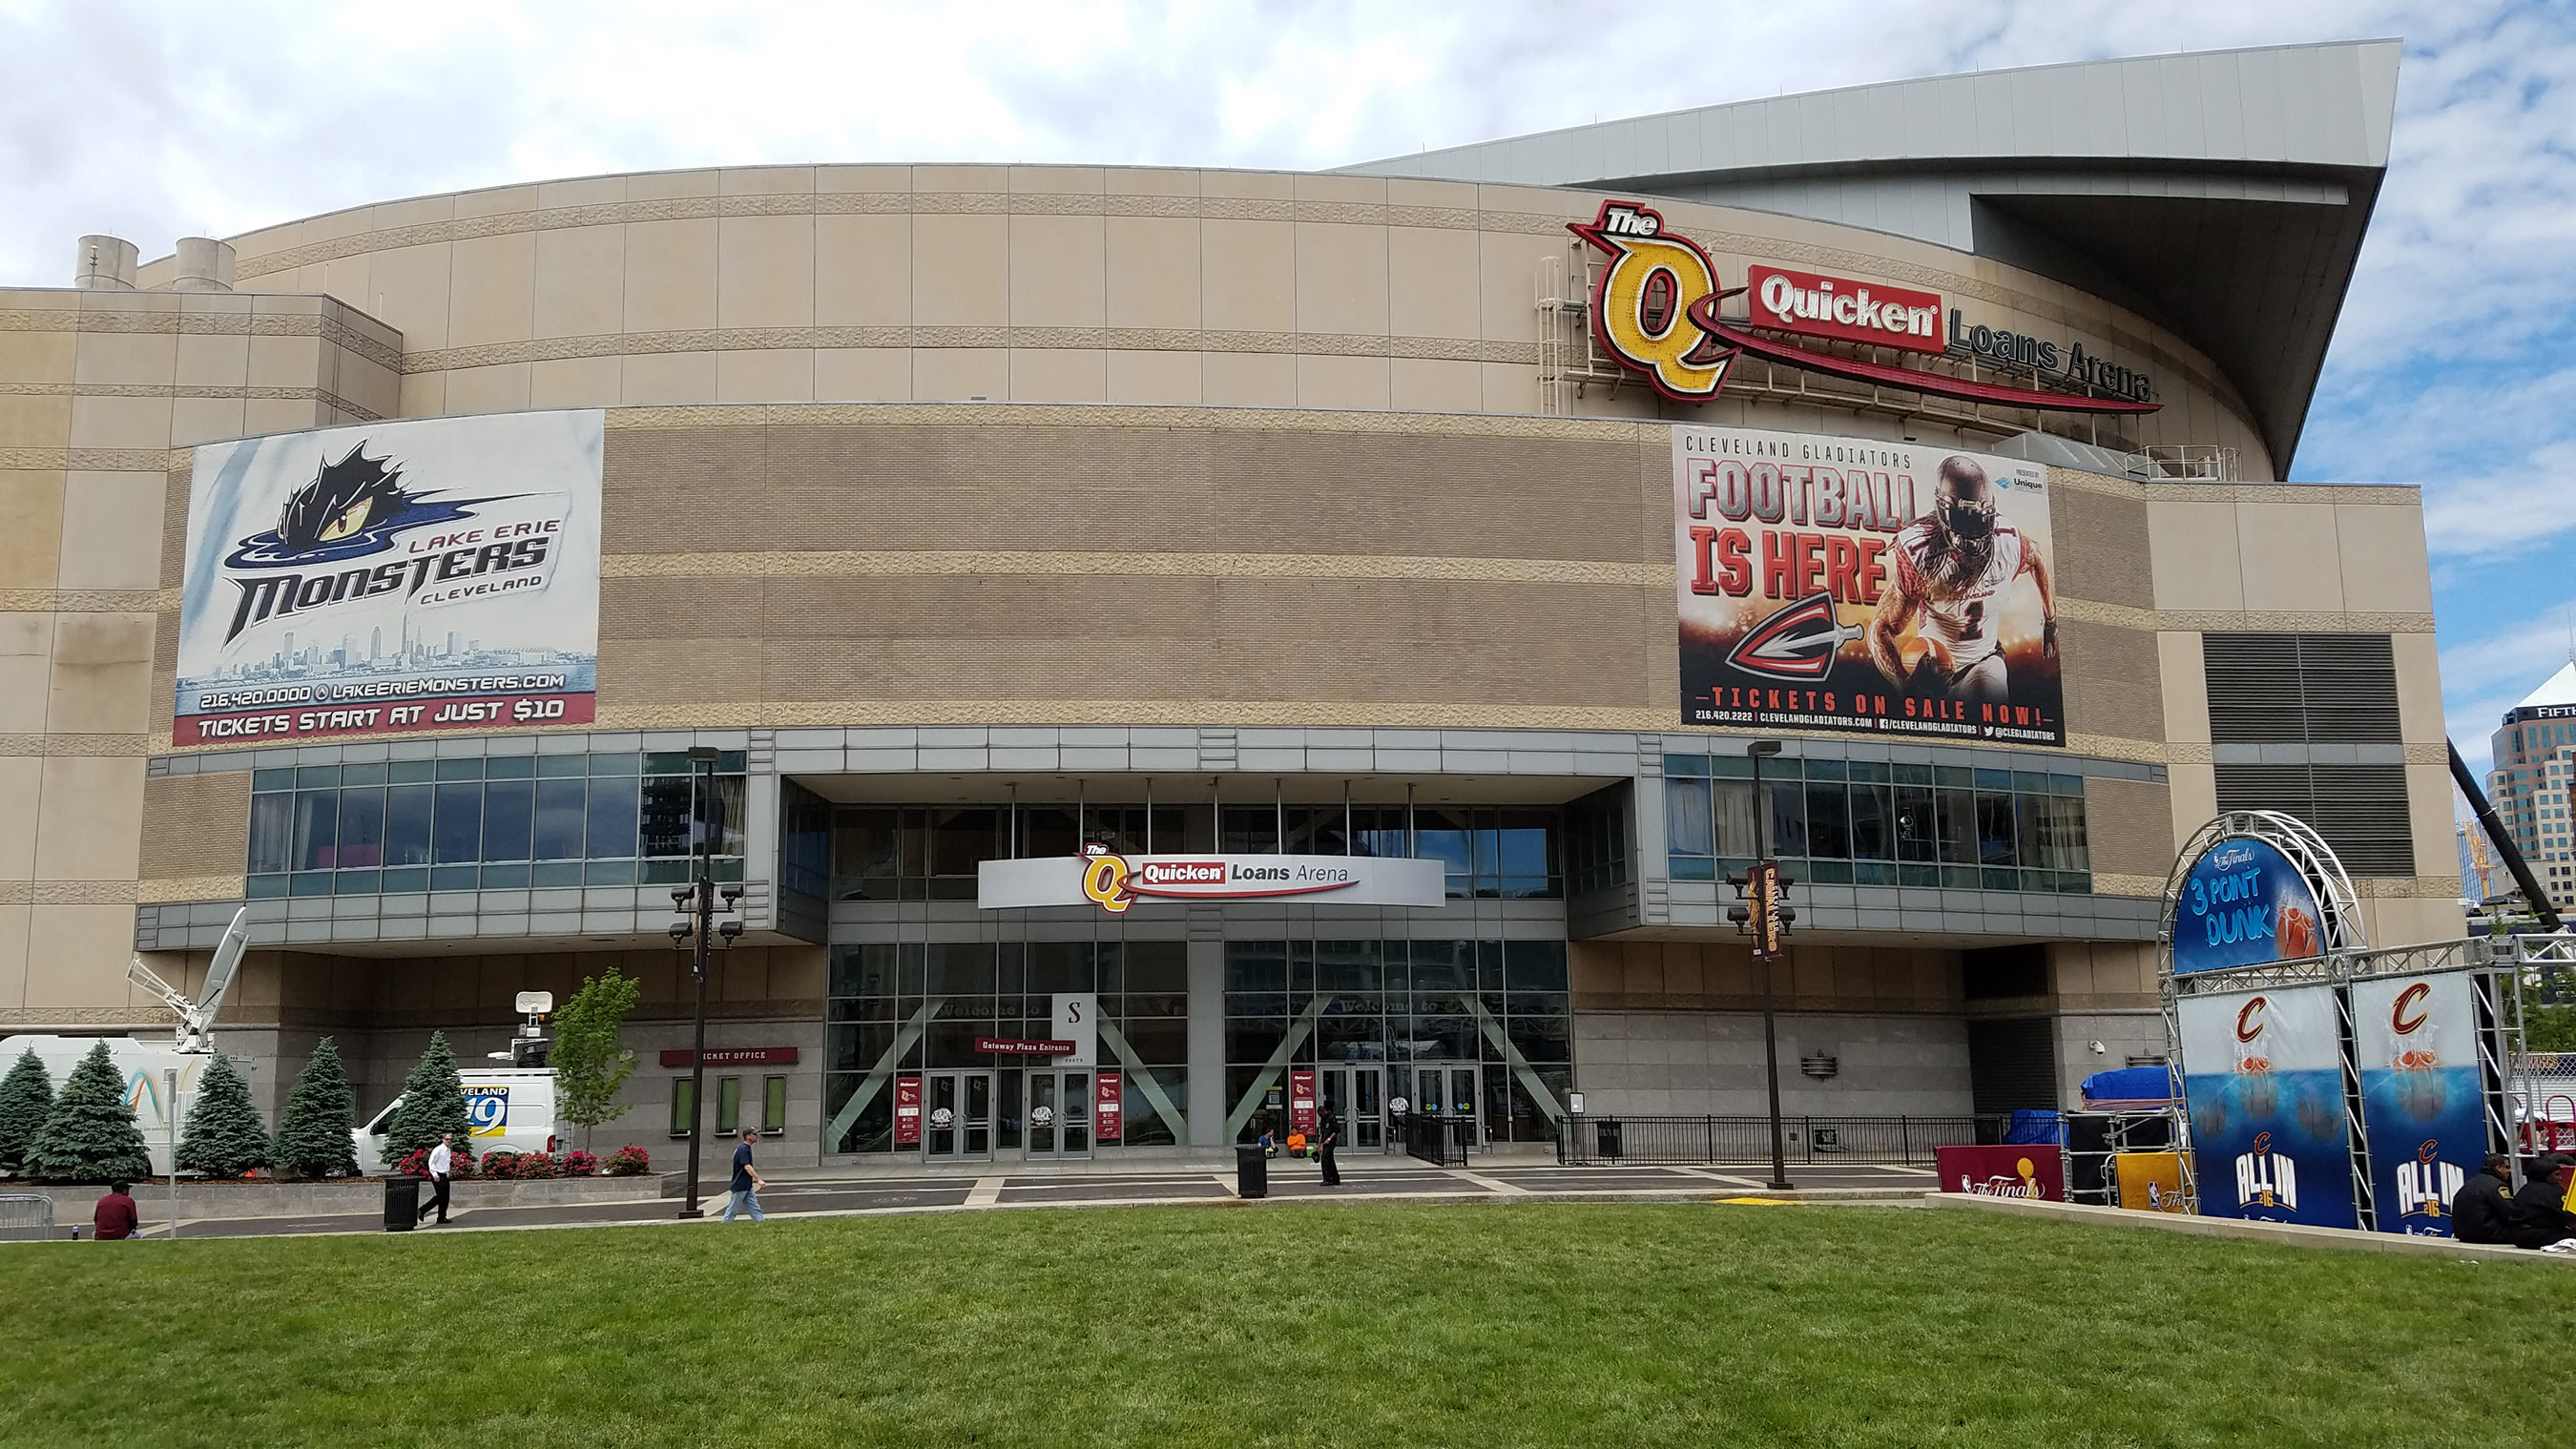 Verizon has upgraded their wireless network in and around Cleveland's Quicken Loan Arena ahead of the Republican National Convention in July.